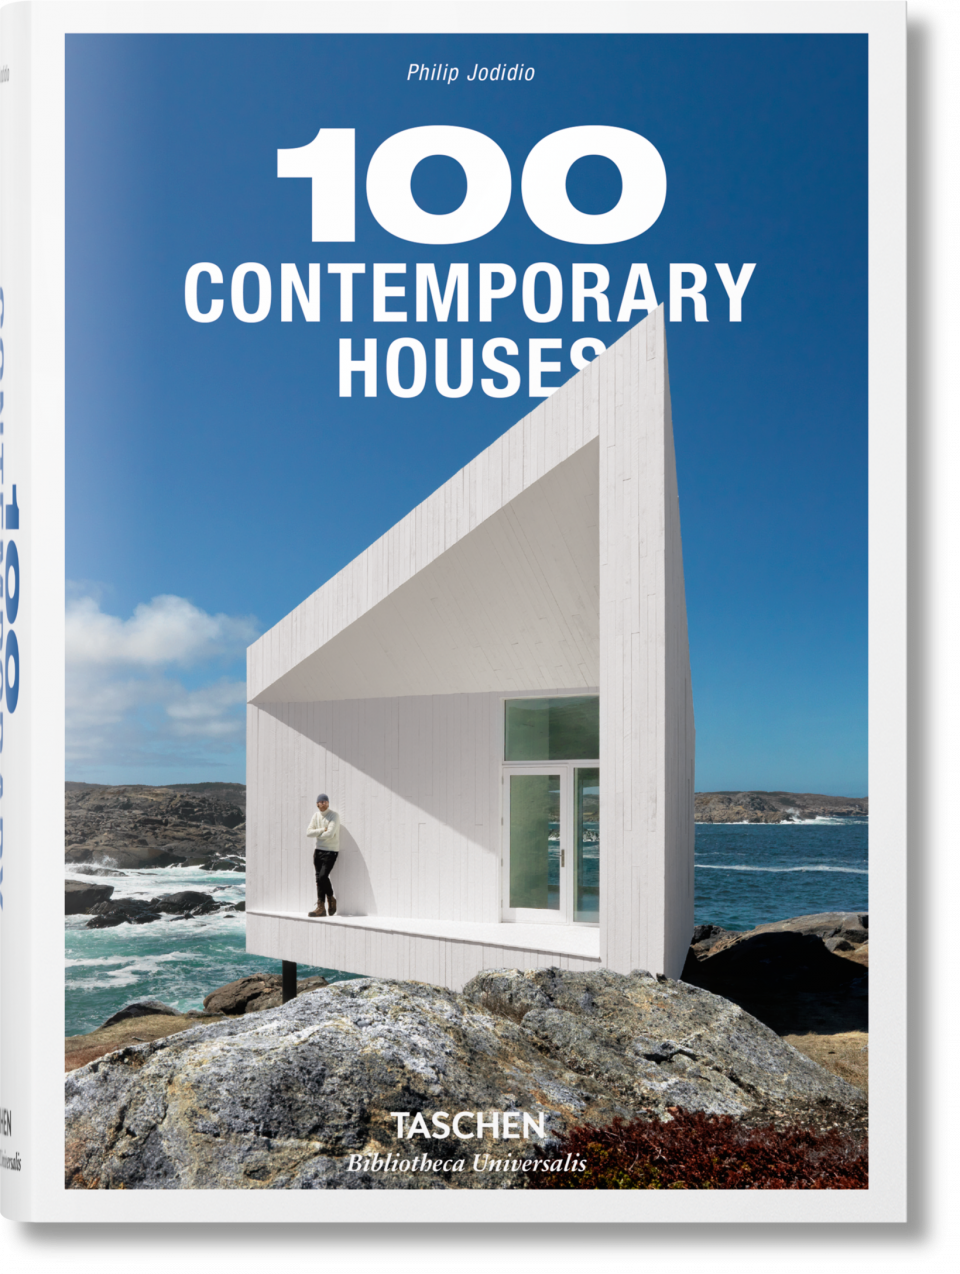 100 Contemporary Houses (Bibliotheca Universalis) - TASCHEN Books